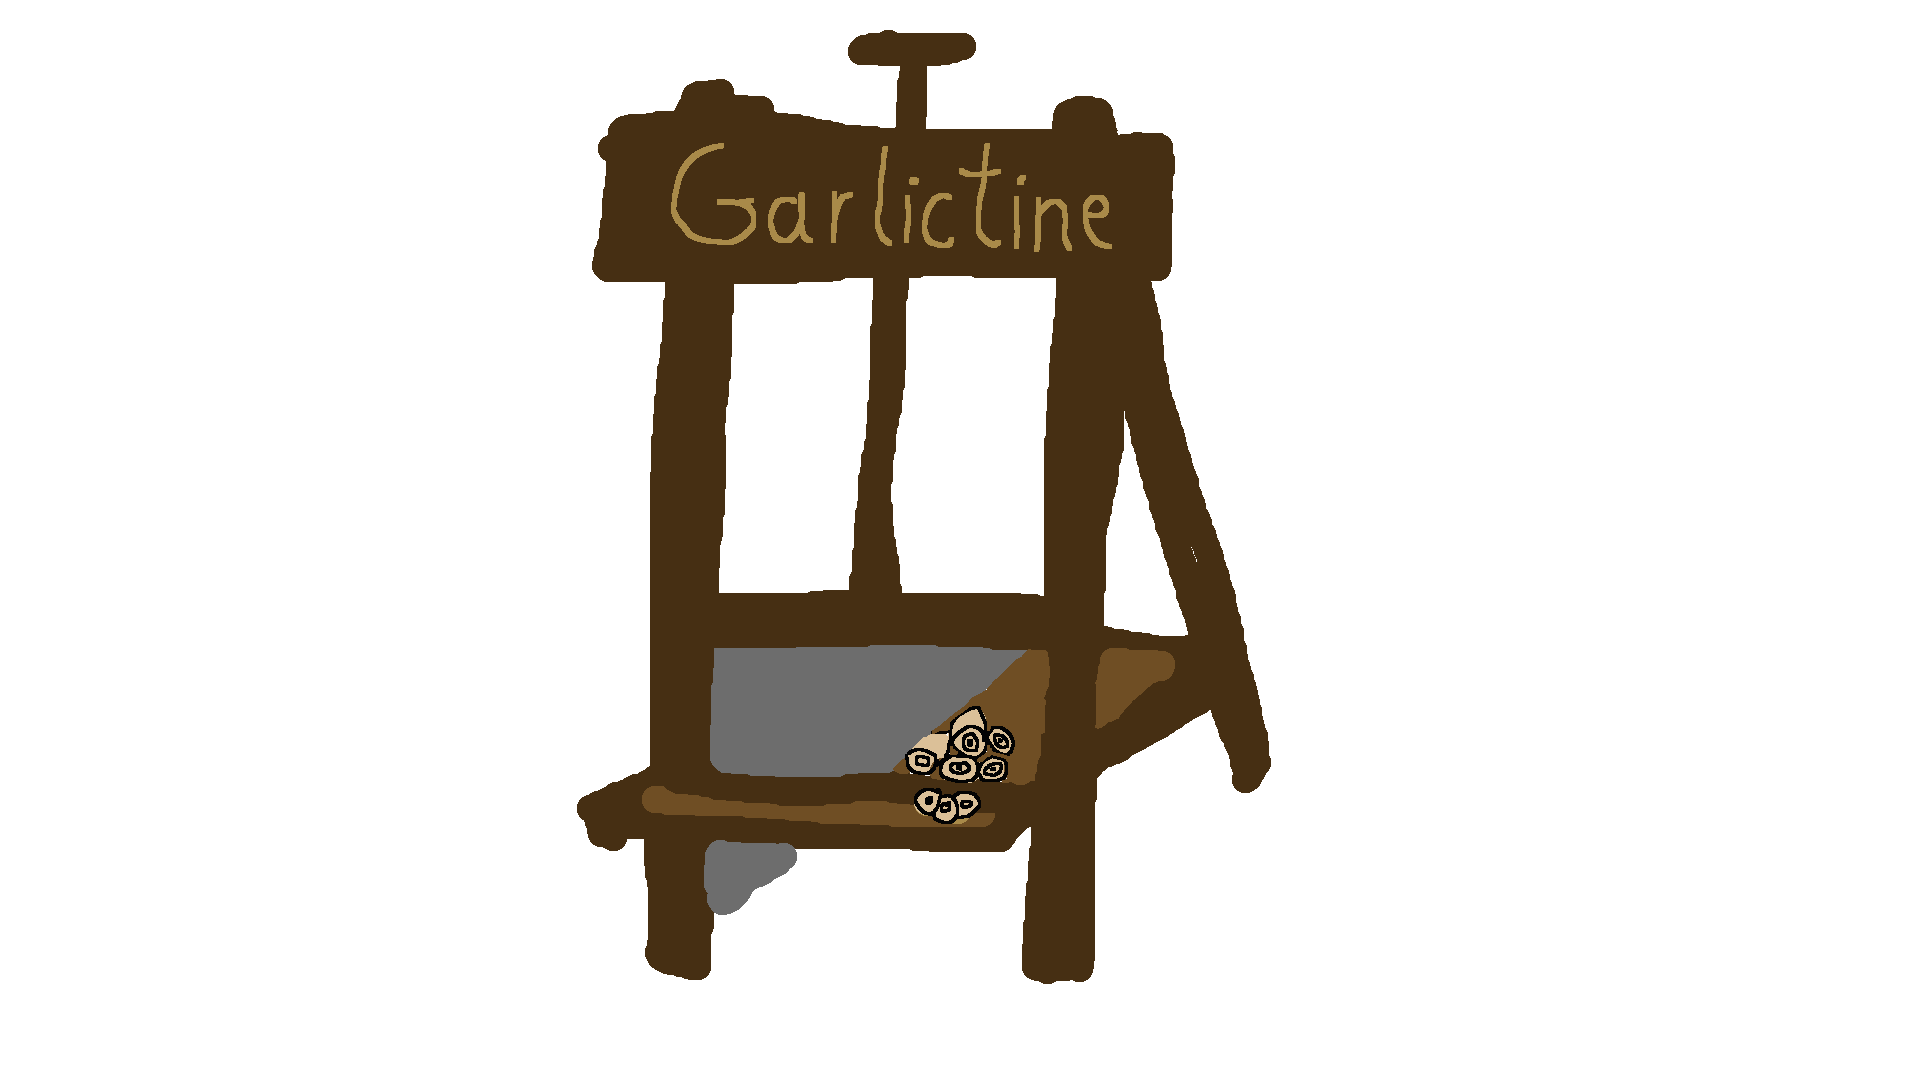 garlictine.png